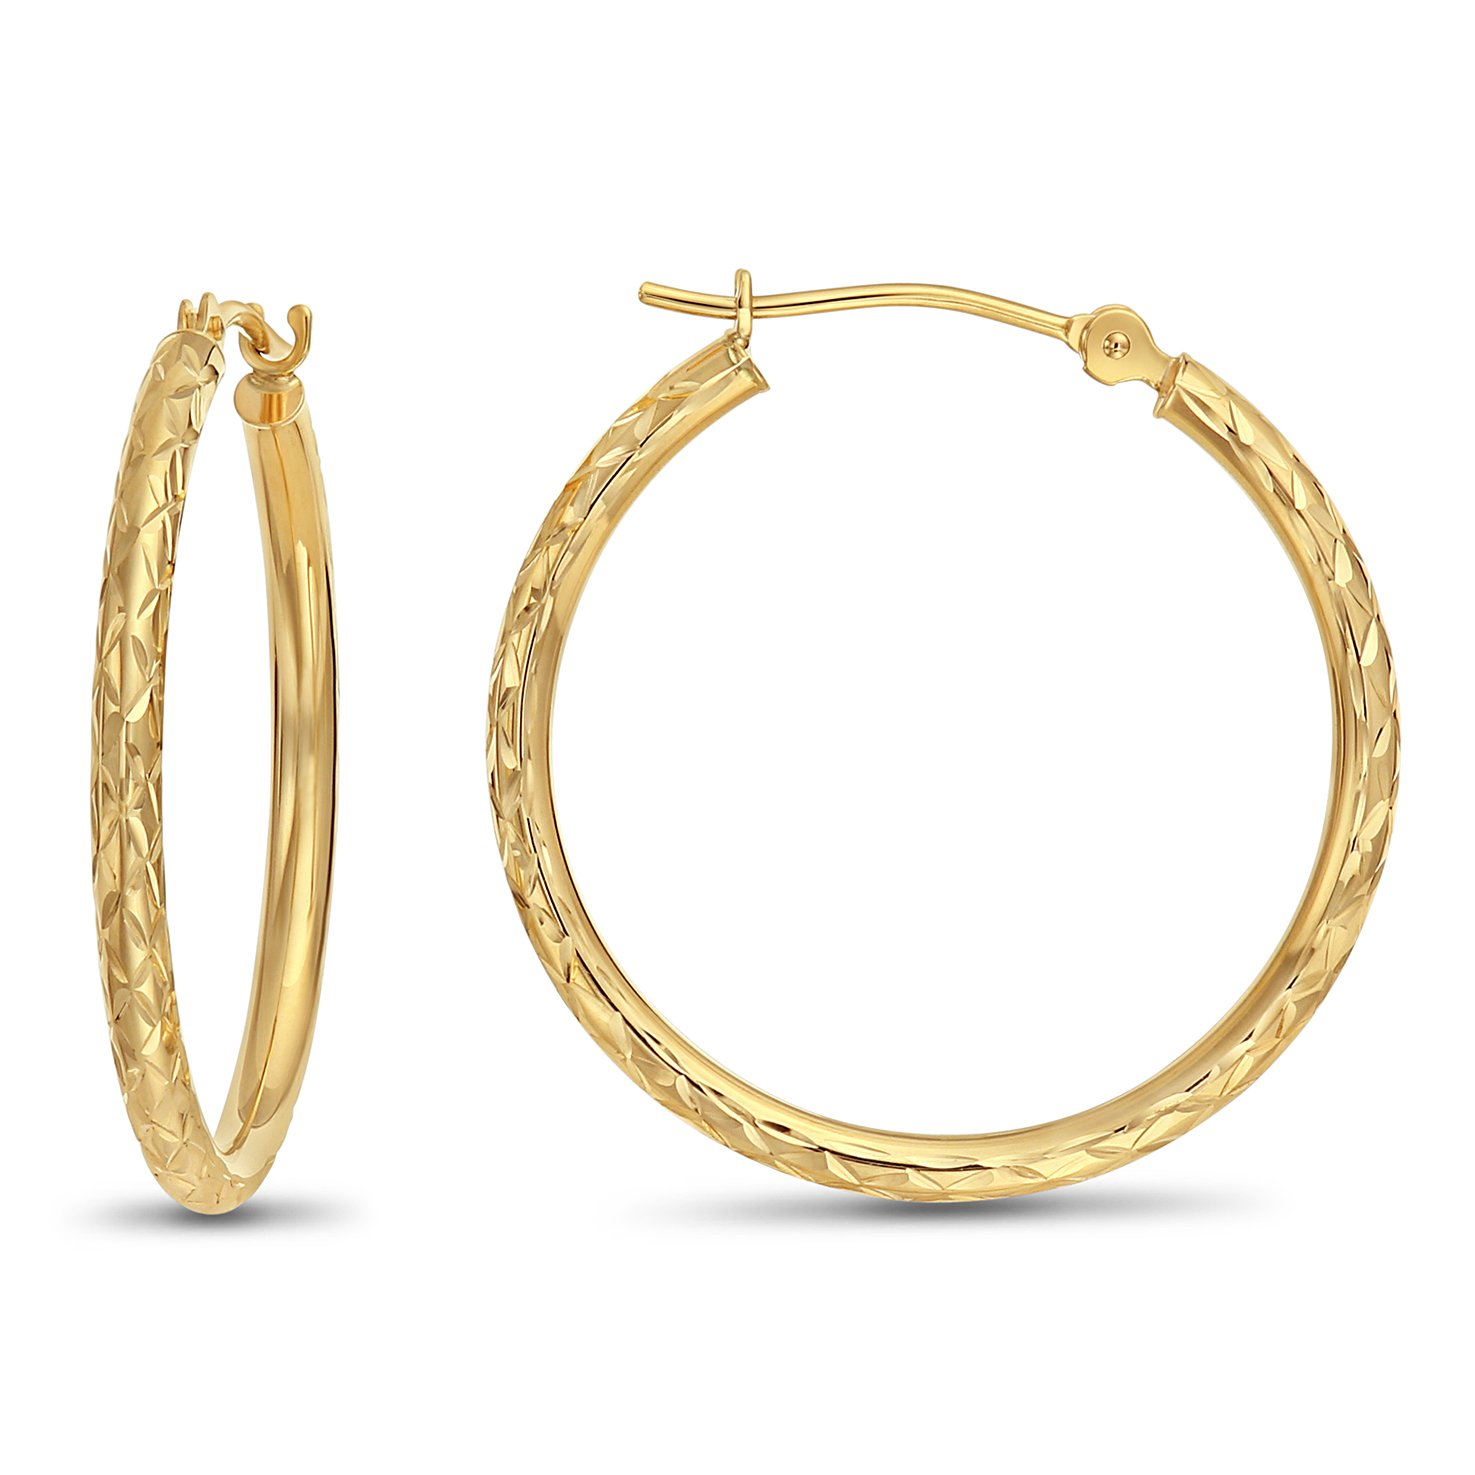 b005dbb7aa90a Galleon - 14k Gold X-pattern Diamond-cut Round Hoop Earrings, 1 ...